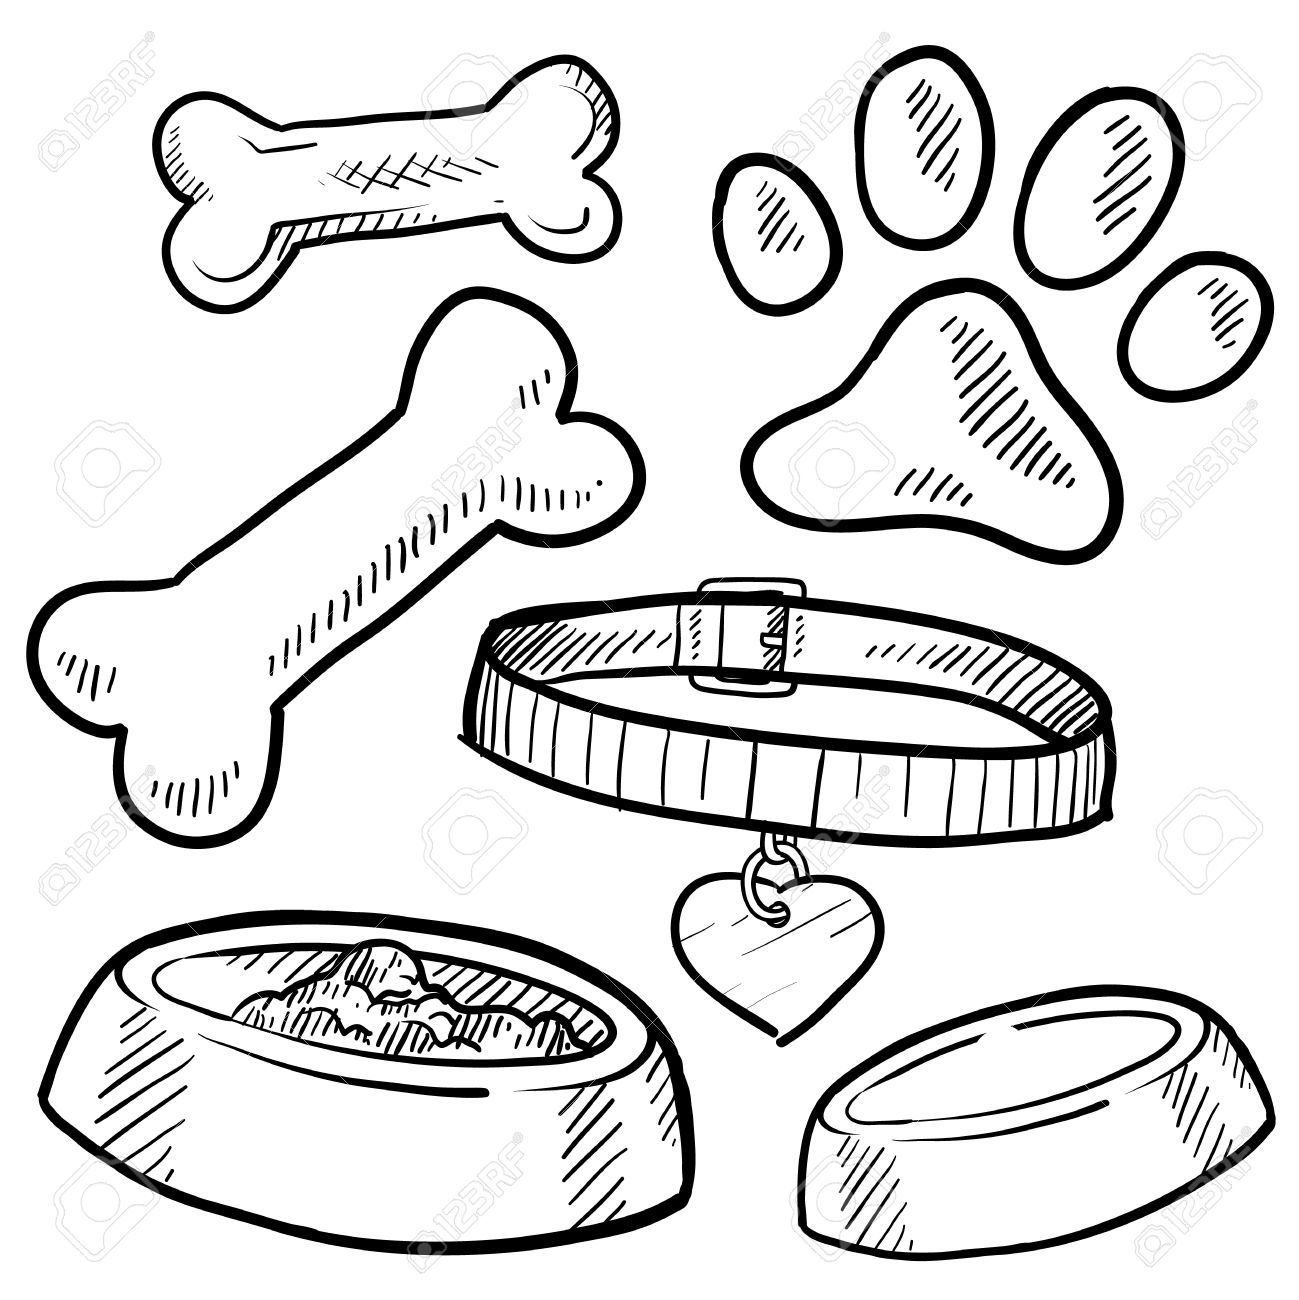 Dog Bowl Drawing